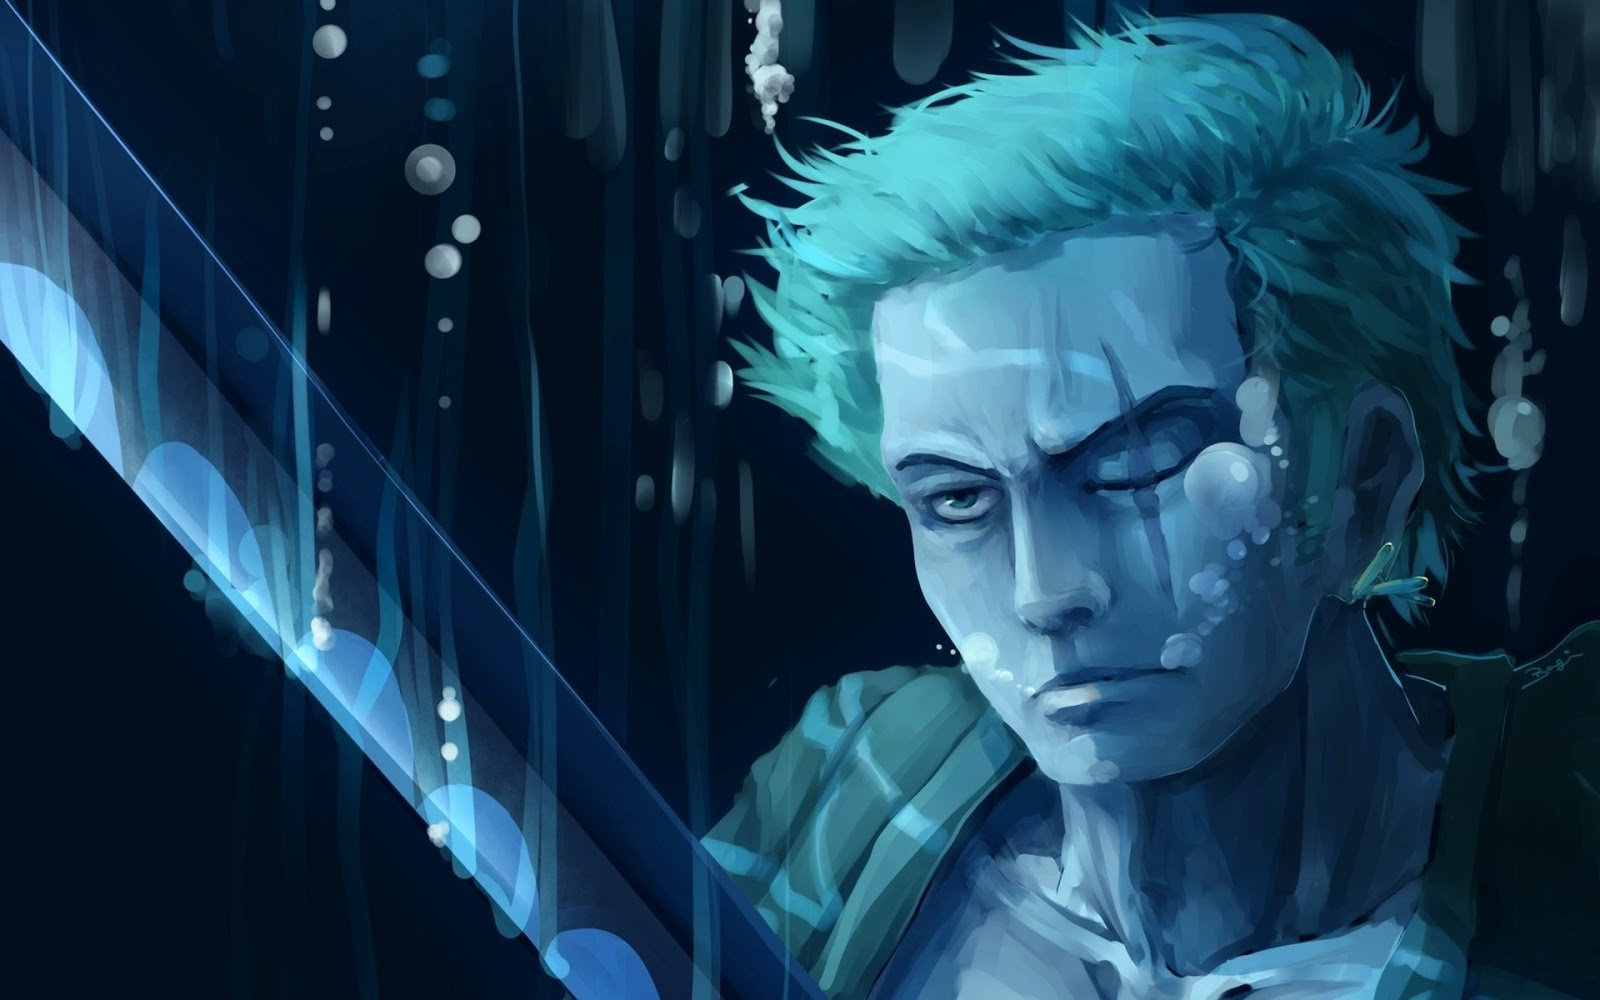 Wallpaper - Roronoa Zoro 309680